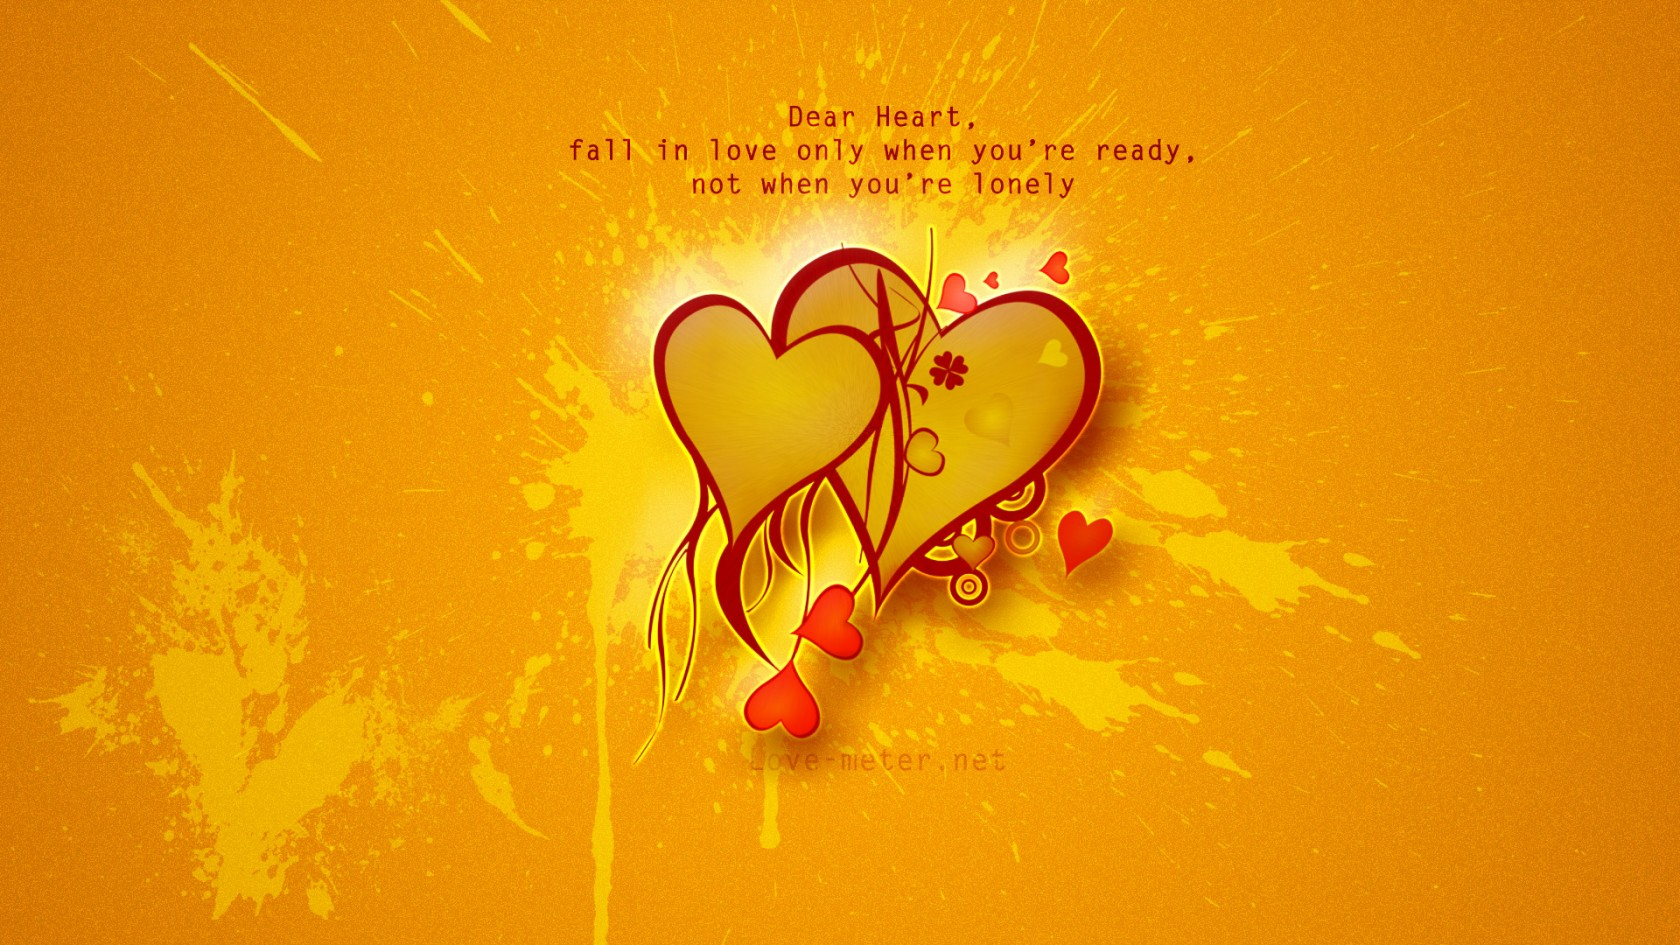 Love Wallpaper Hd High Resolution : Love Quotes Wallpaper 3 High Resolution Wallpaper - Hdlovewall.com